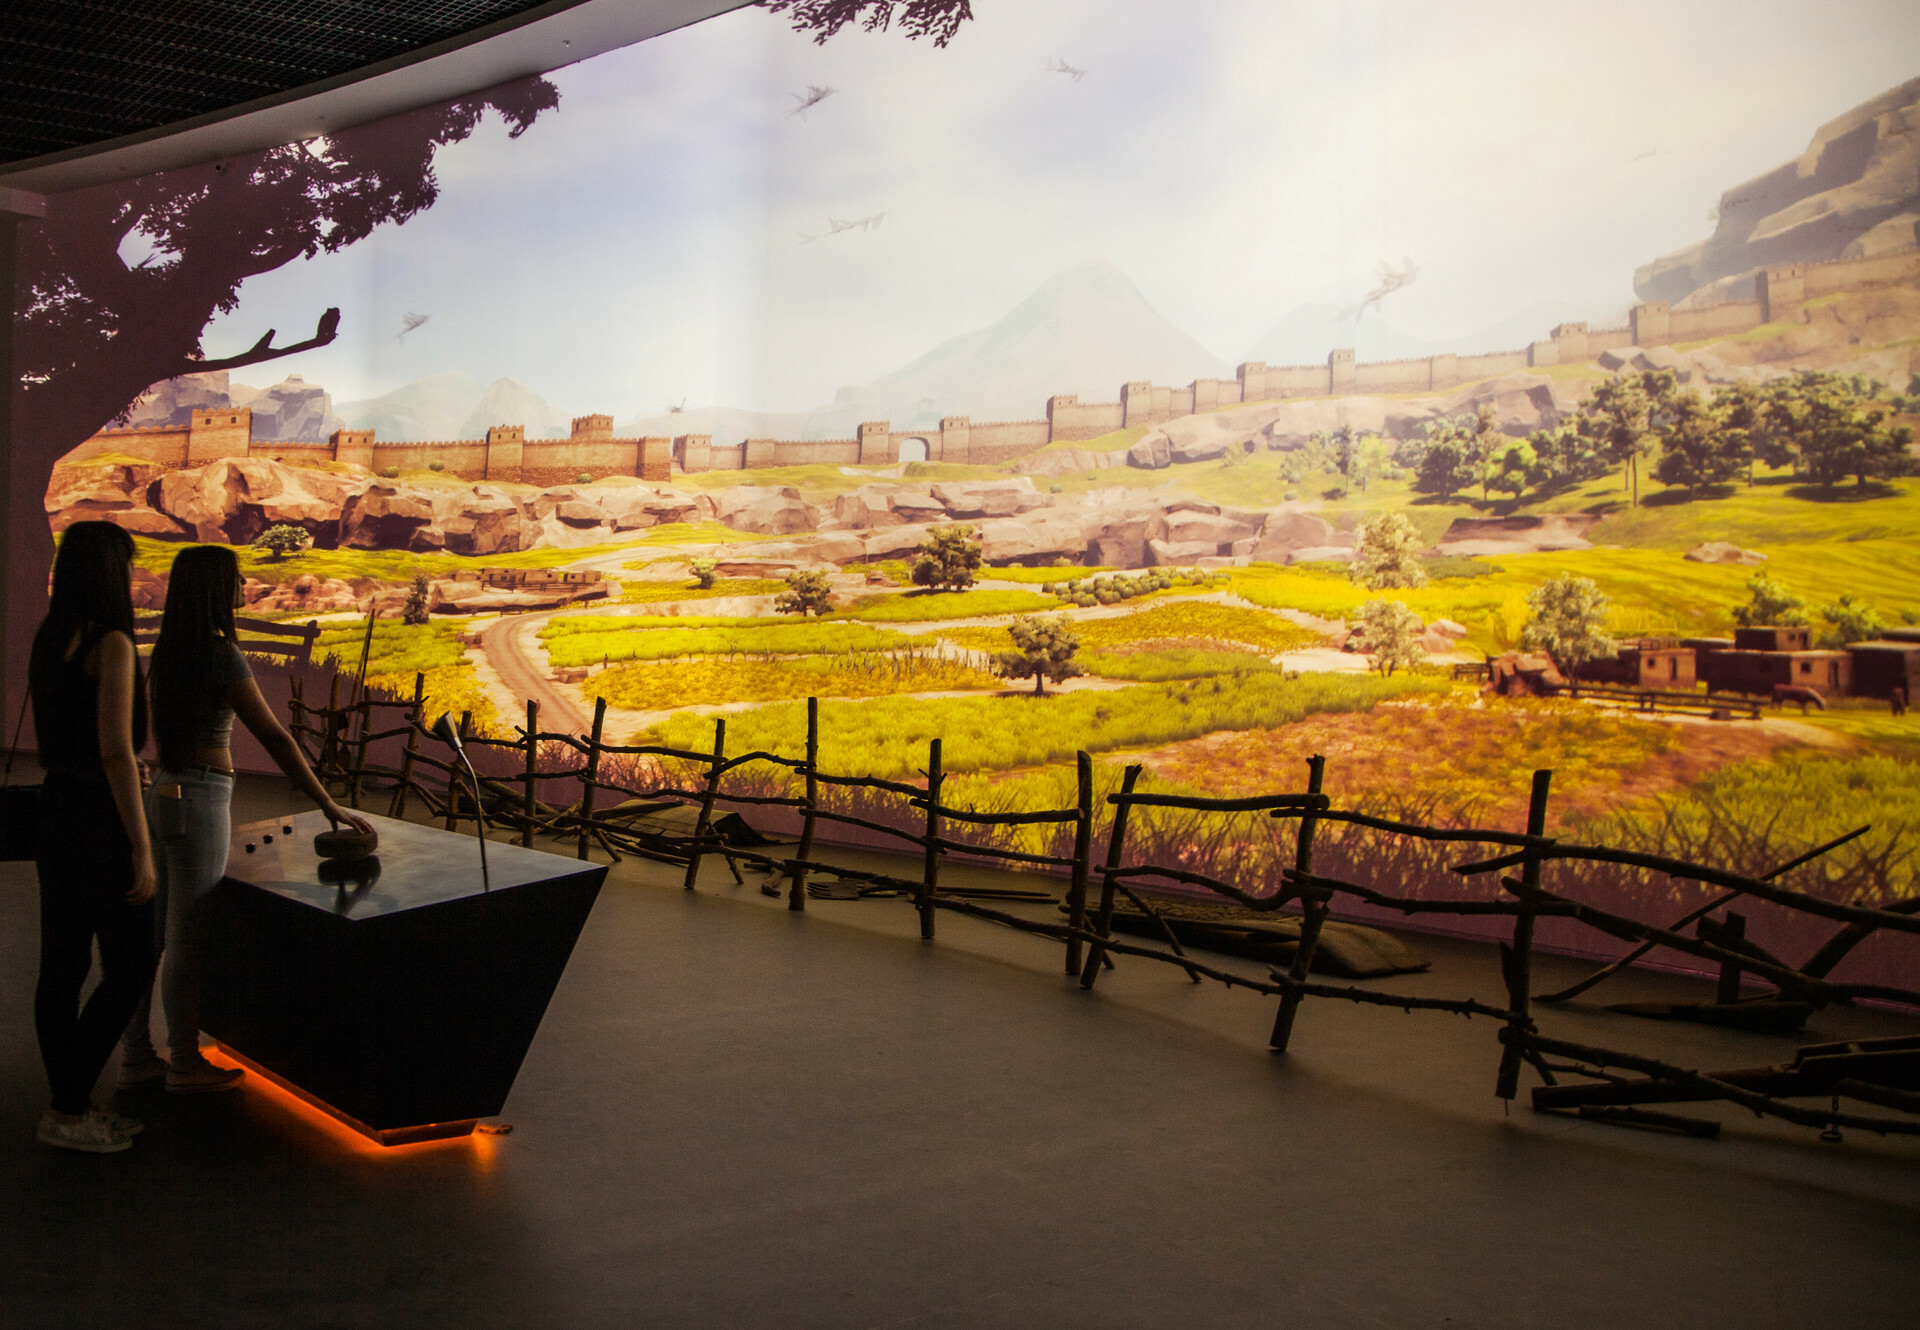 The Hittite Village, Interactive Installation, Museum for Biodiversity and Agriculture, EXPO 2016, Visitors can change weather situation in the ancient village like Teshub, Hittite god of sky and storm.  